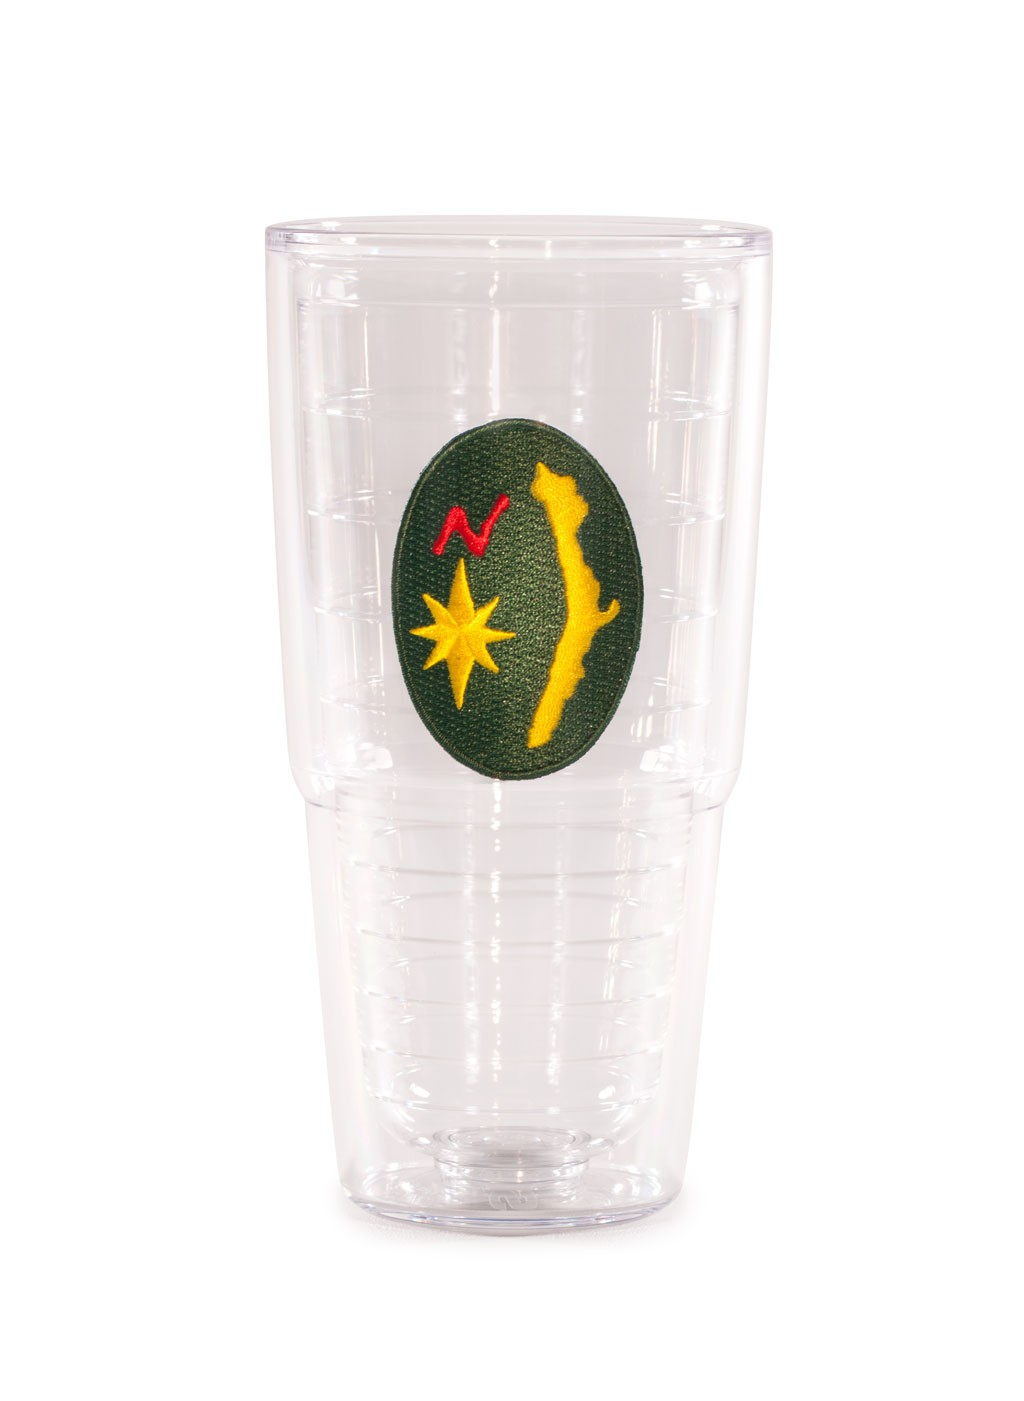 Tervis Tumbler - Island Logo 24 oz - Green/Yellow